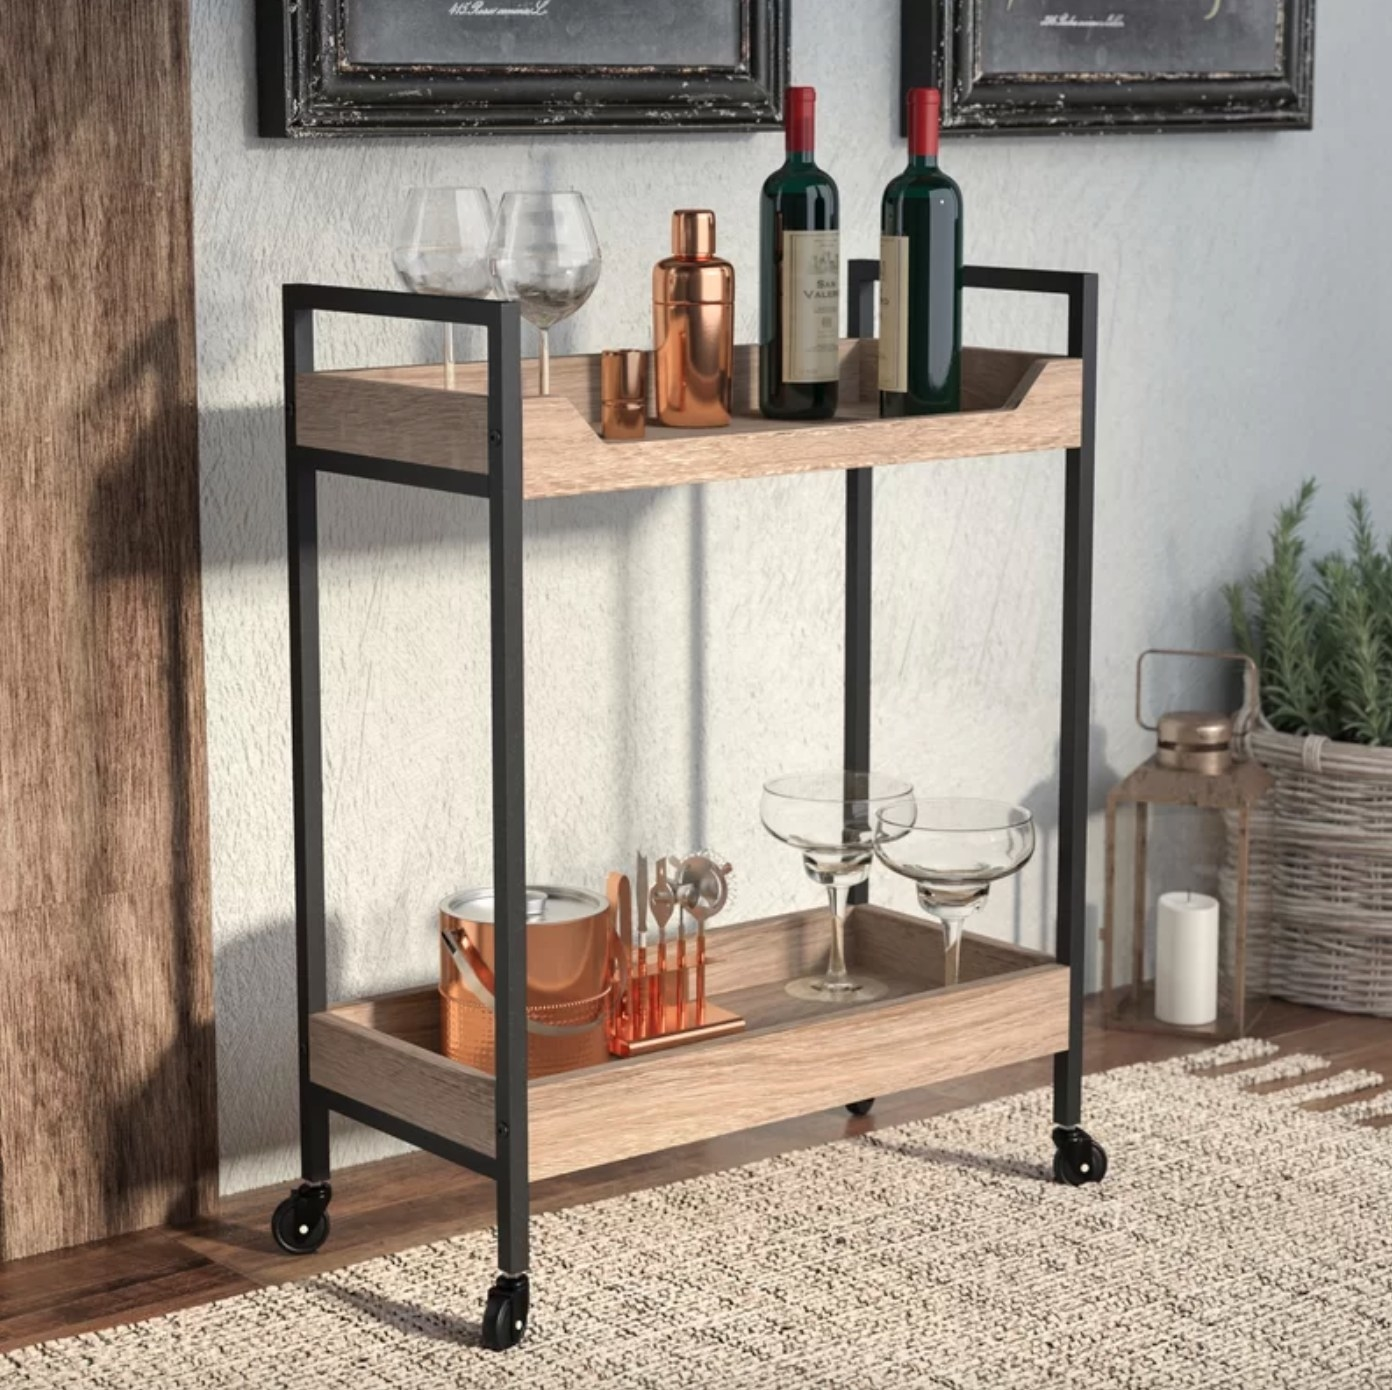 The bar cart in charter oak holding glasses, wine bottles, and cocktail kits